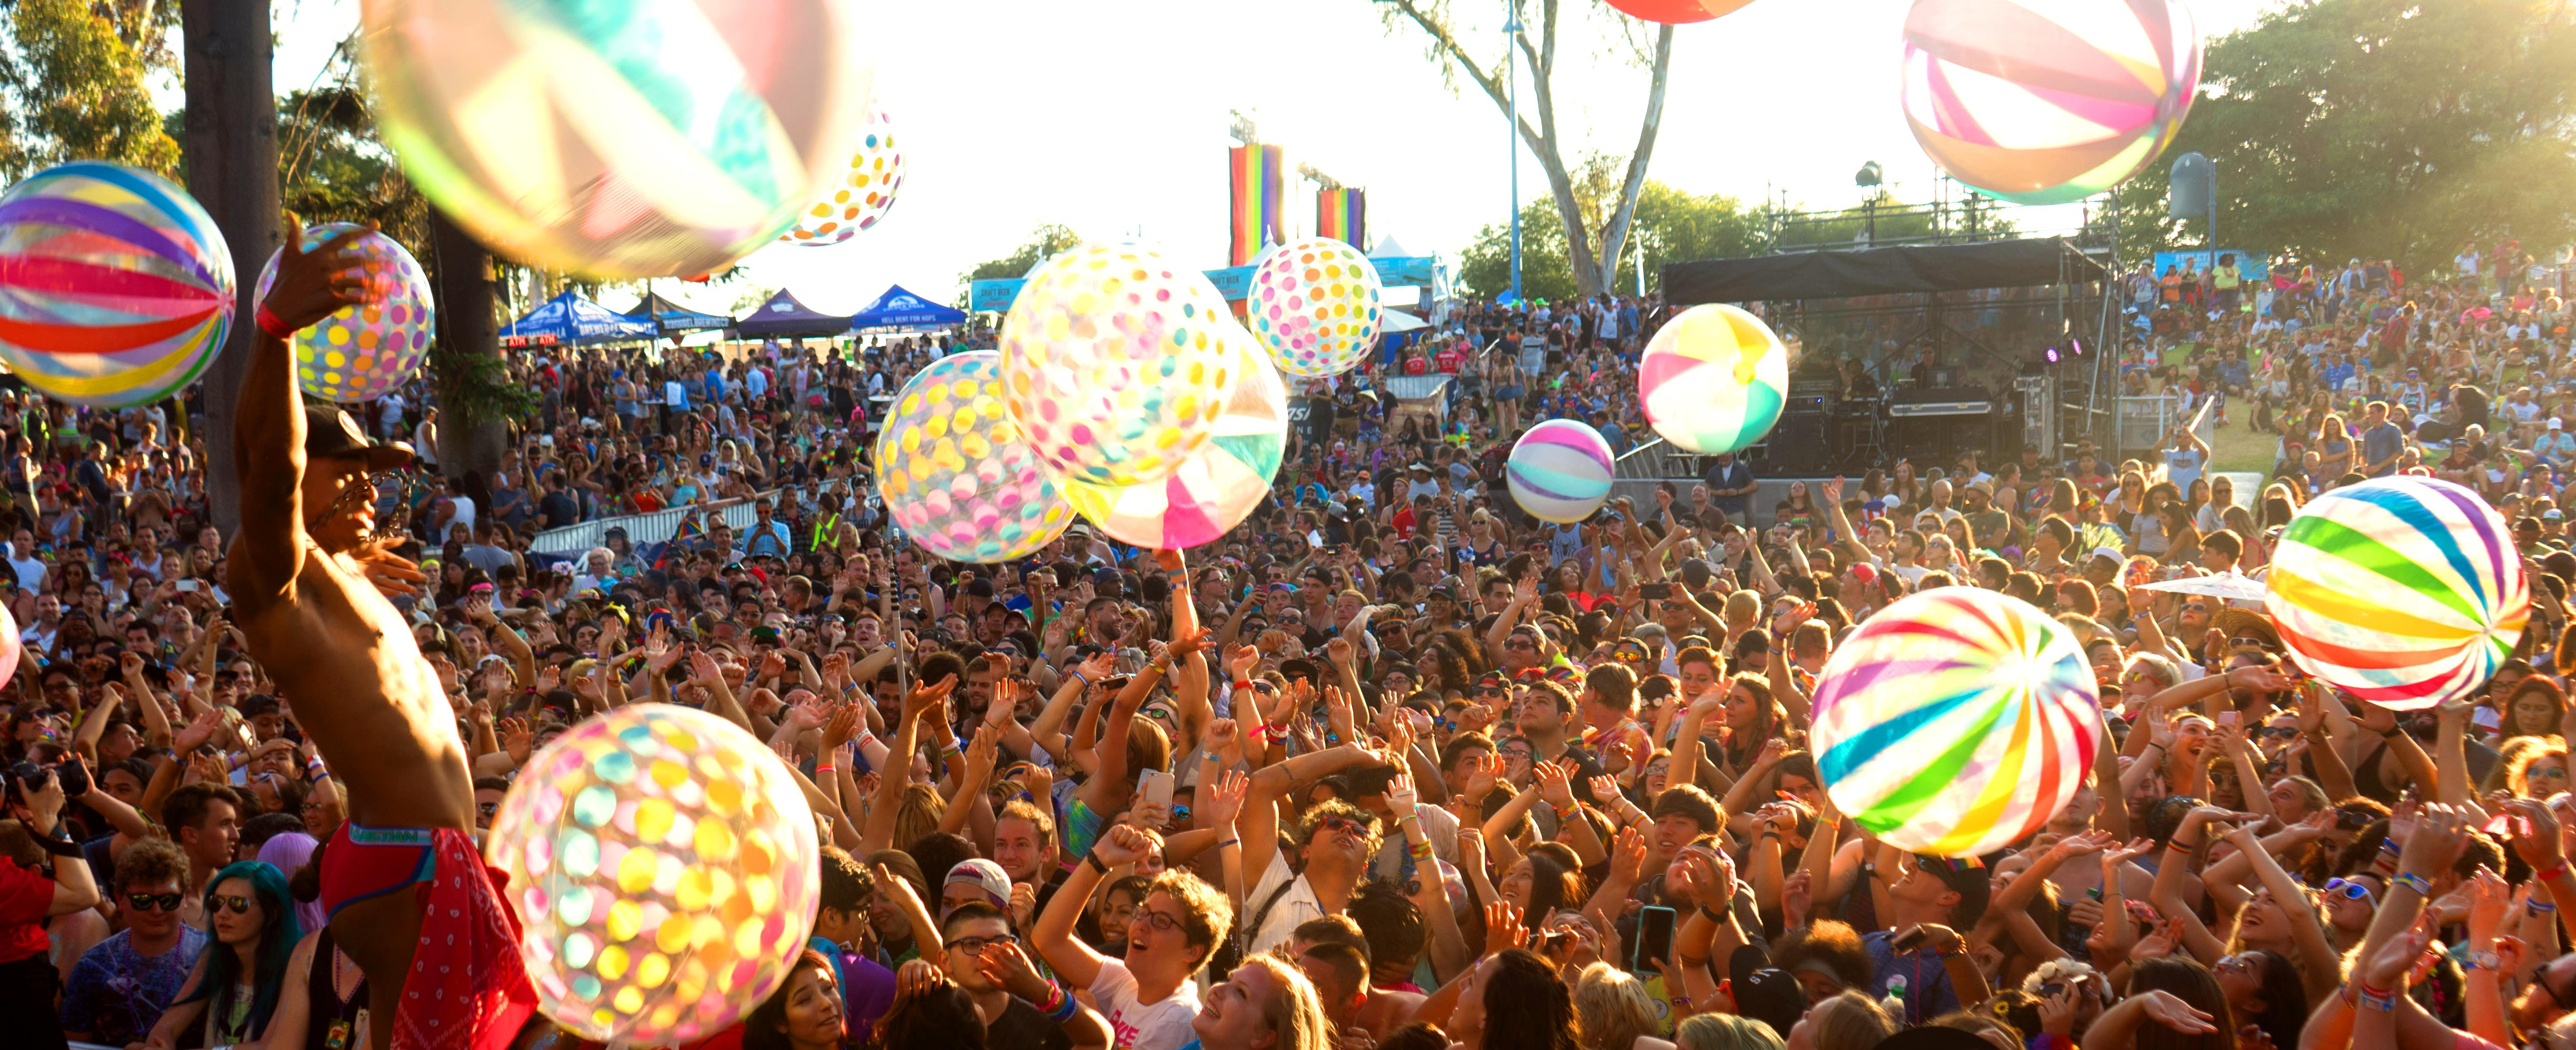 A crowd at a music festival. Love Sensation is the new queer festival coming up this summer